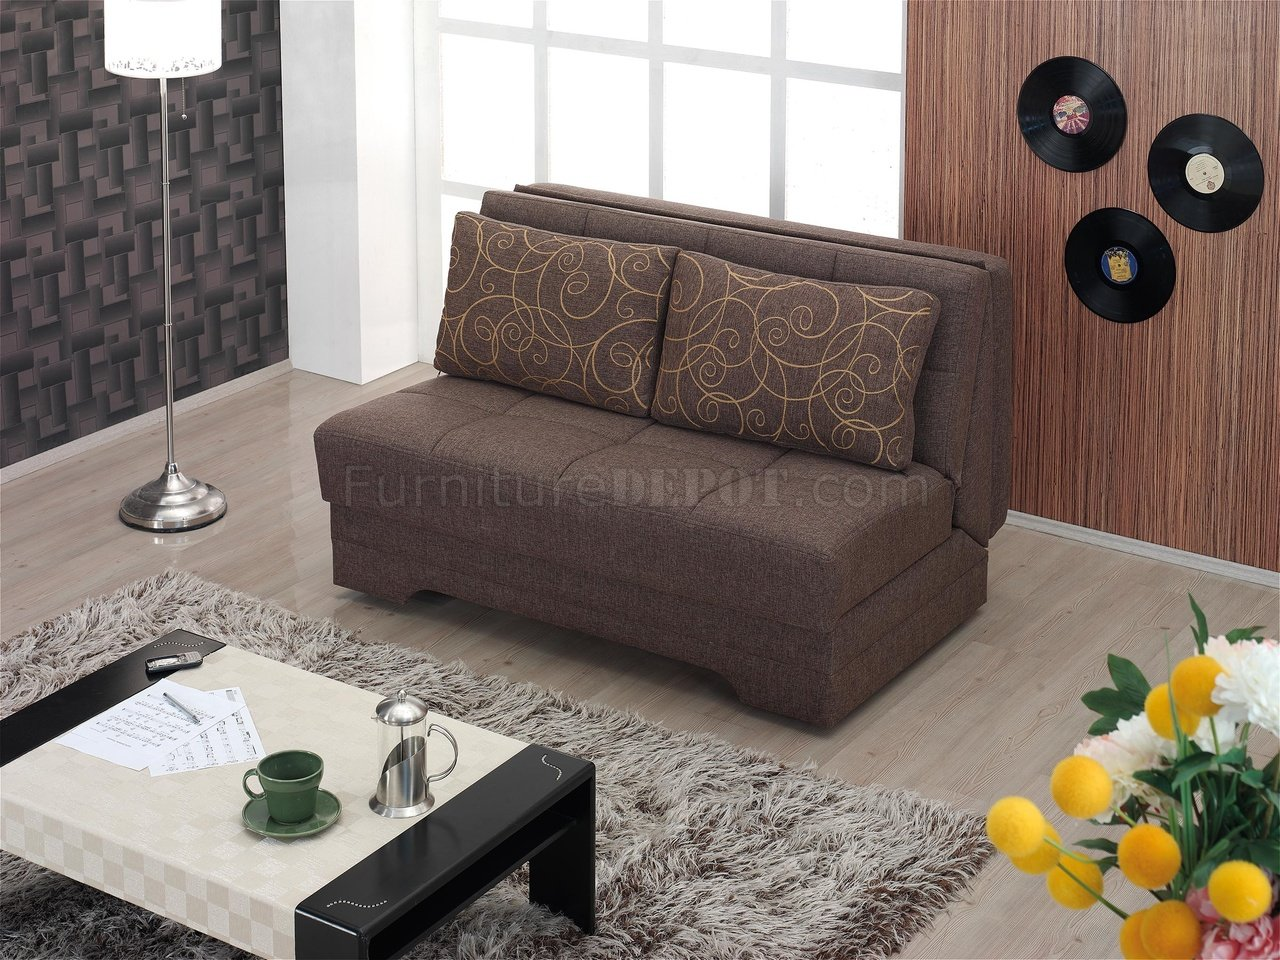 El Paso Loveseat Bed Convertible In Brown Fabric By Empire